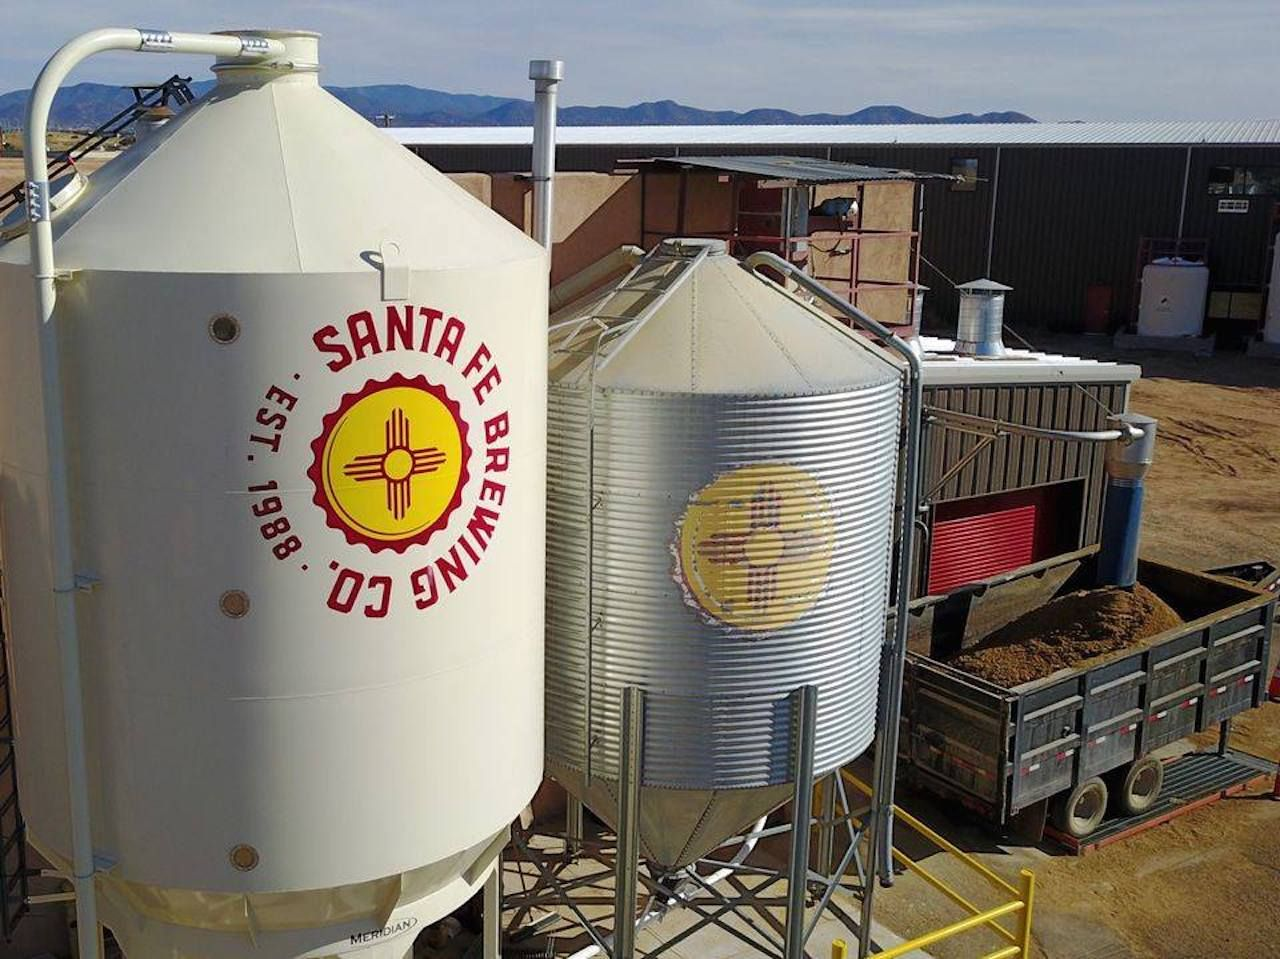 Santa Fe Brewing Company is one stop on a bicycle and beer tour of Santa Fe